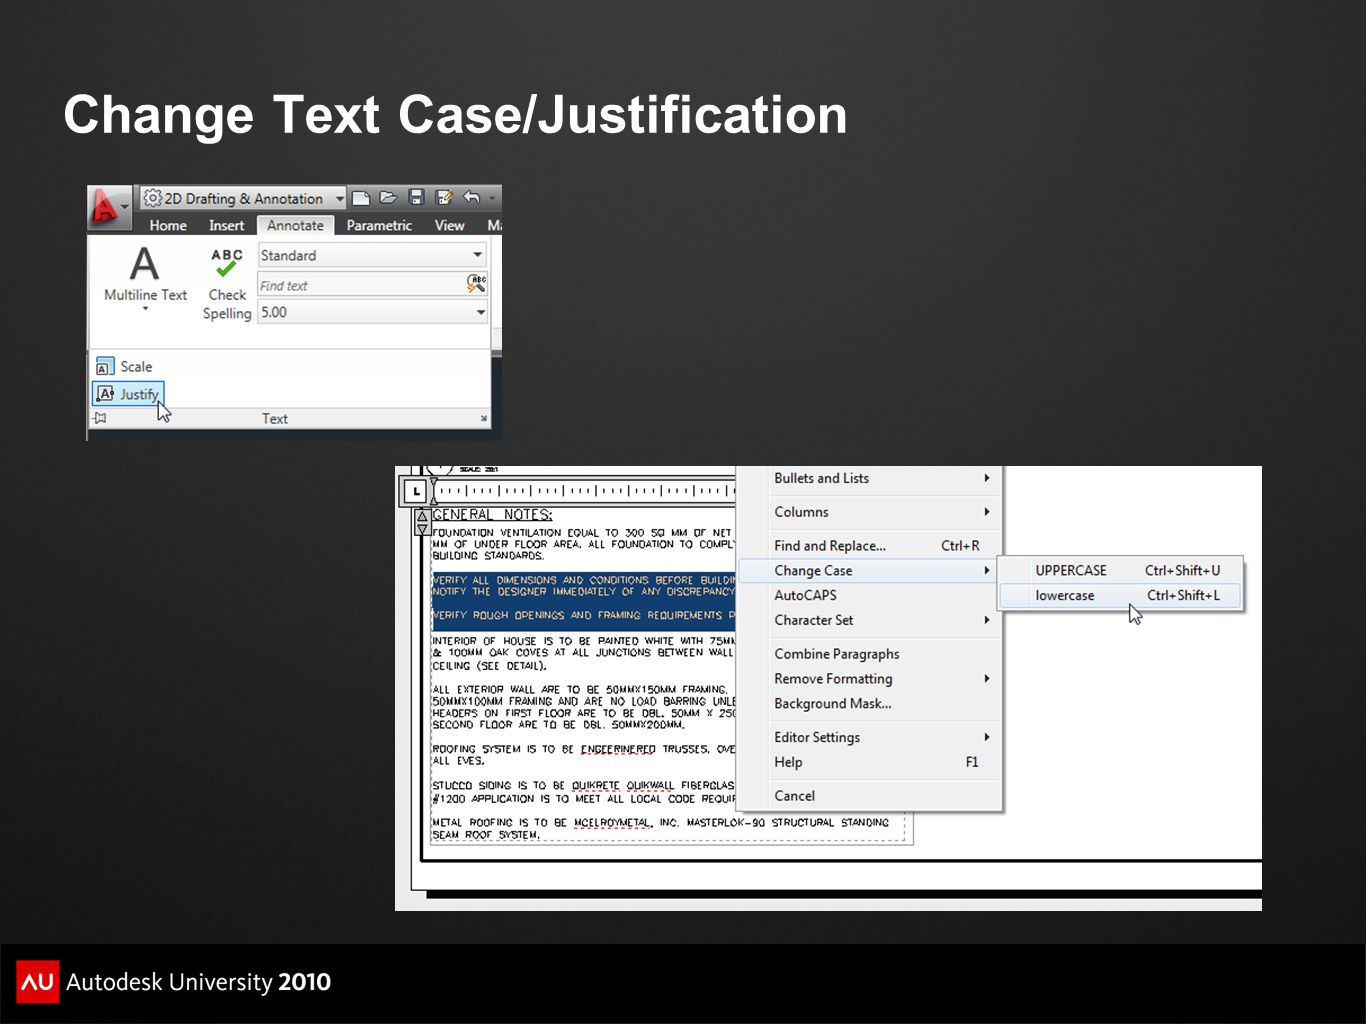 Change Text Case/Justification